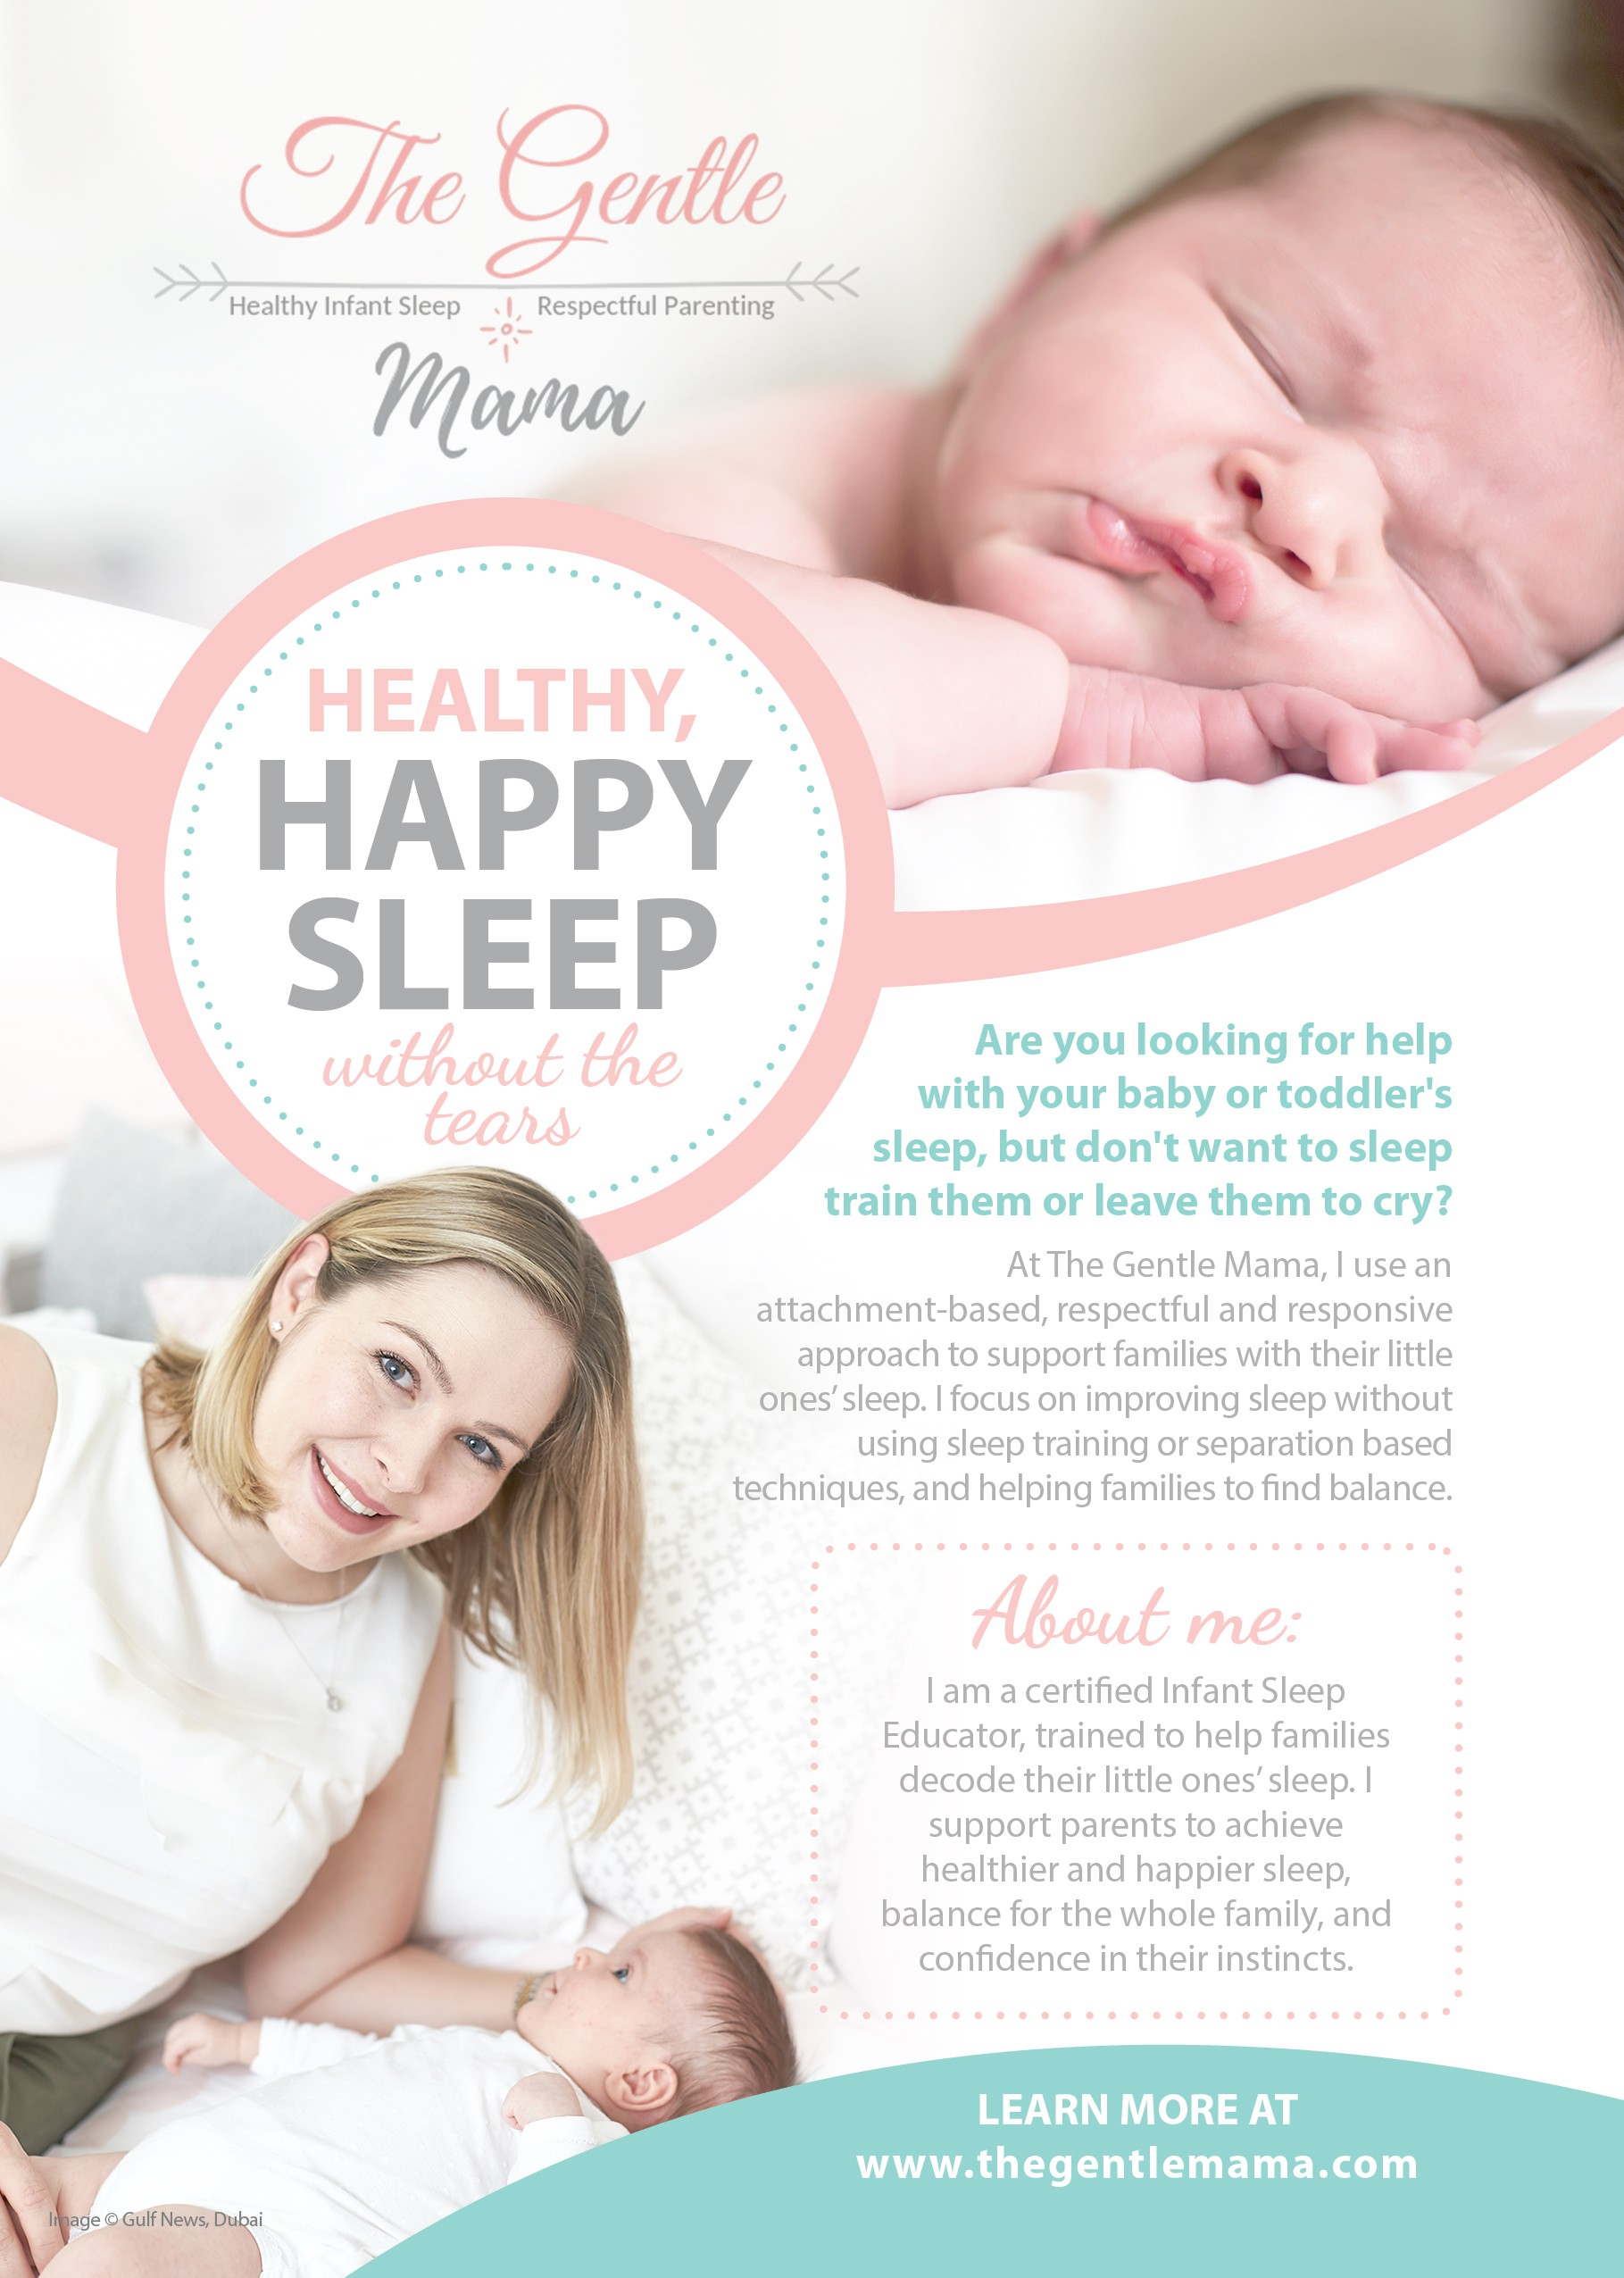 Calm and informative flyer targeting sleep deprived parents